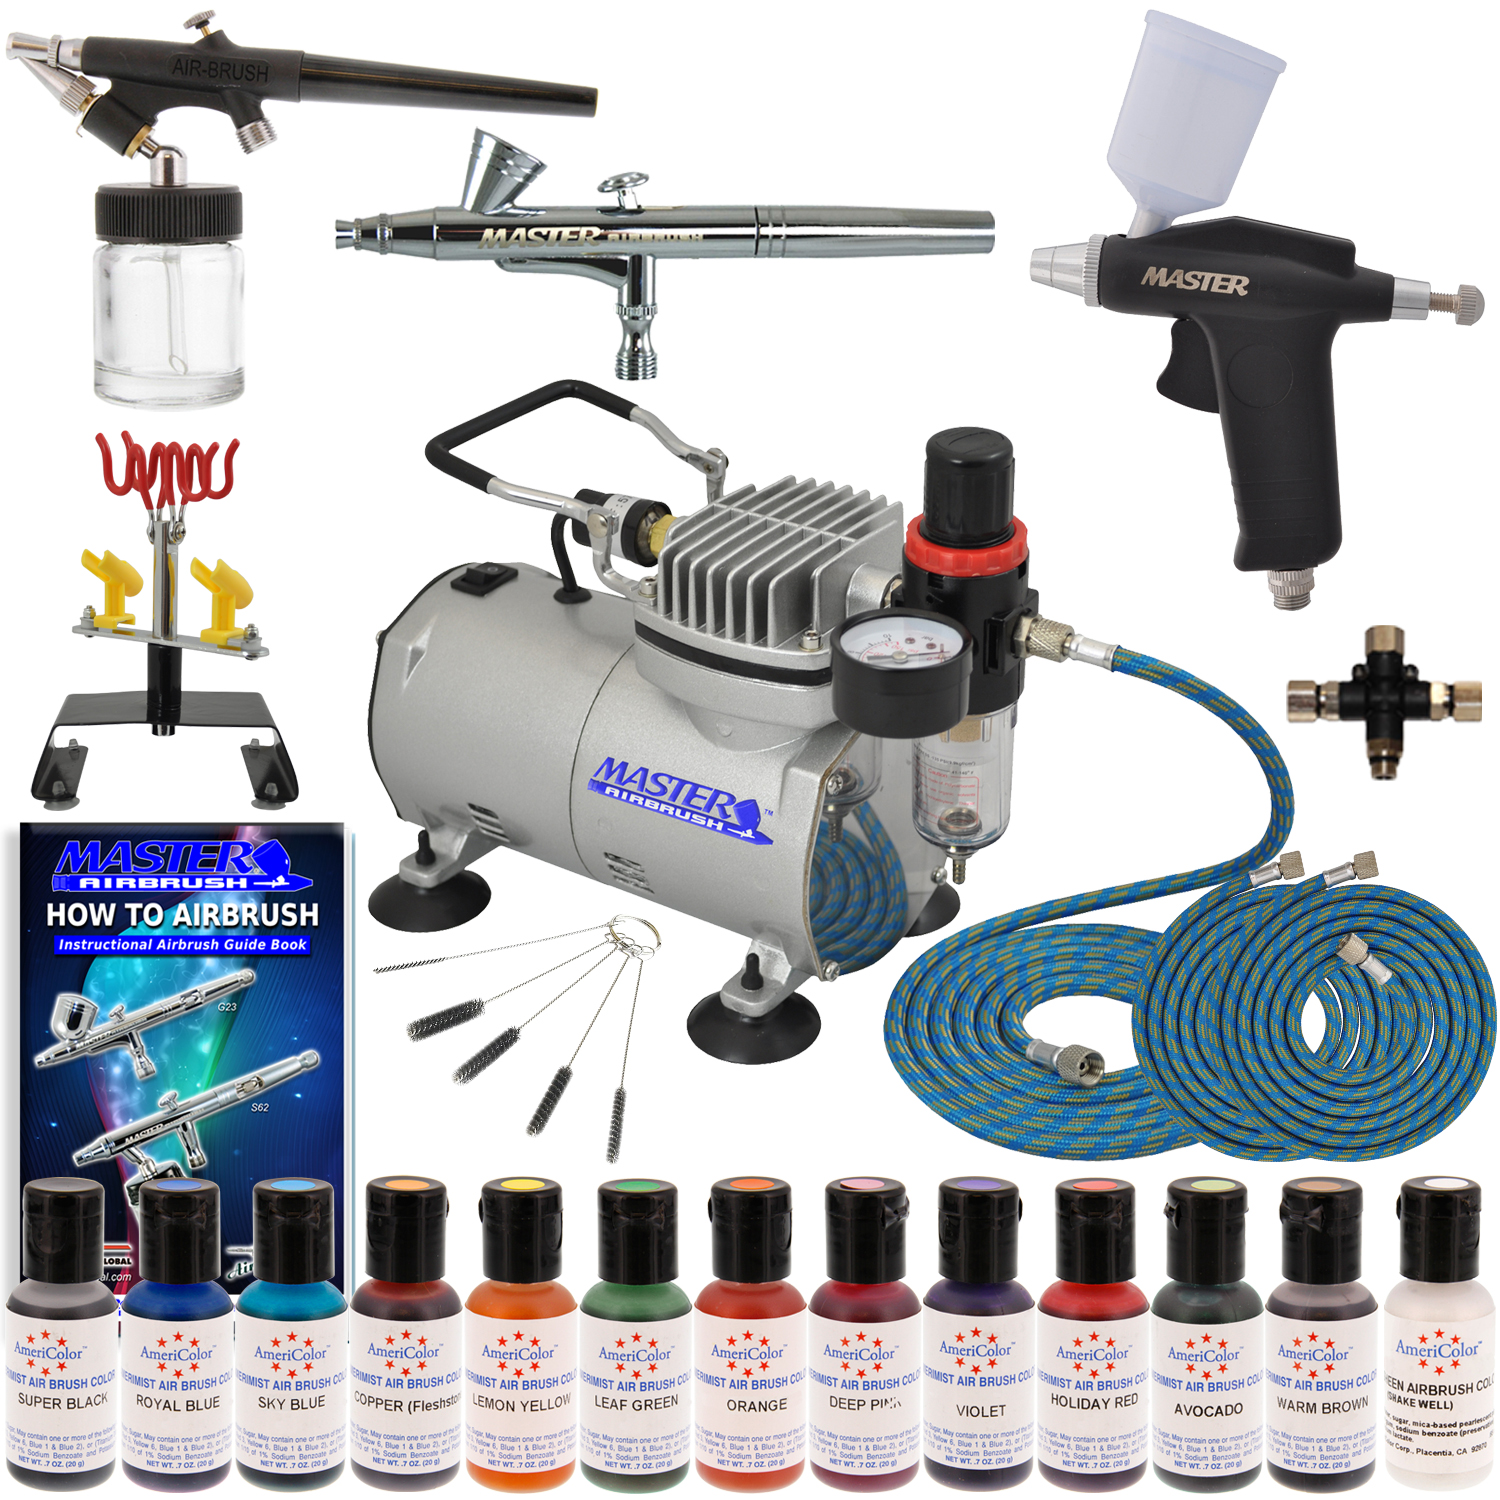 Airbrush For Cake Decorating : Deluxe 3 Airbrush Cake Decorating Kit Air Compressor 12 ...